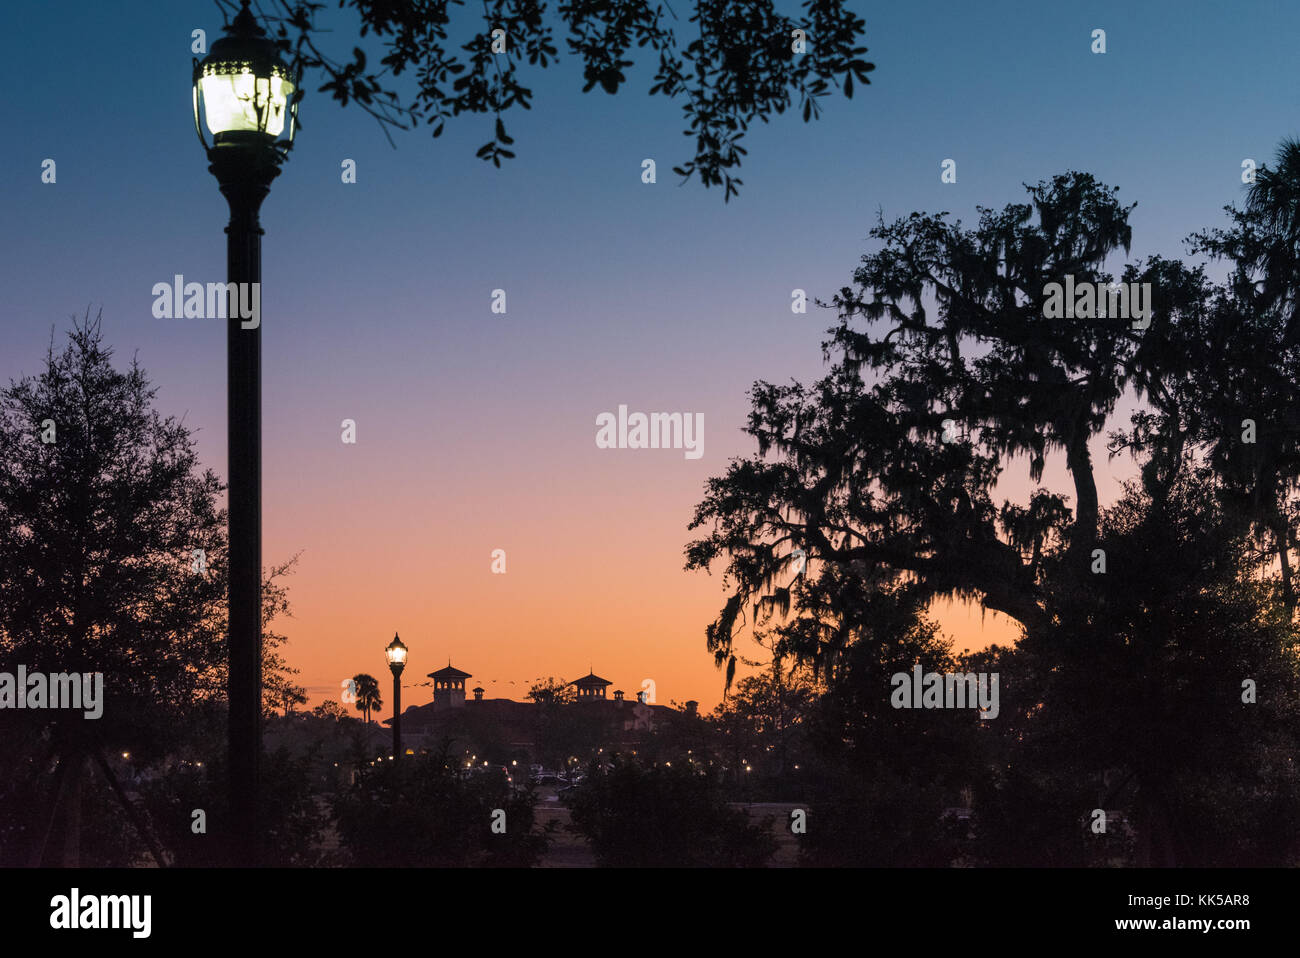 Dusk settles over the TPC Sawgrass Clubhouse in Ponte Vedra Beach, Florida. (USA) - Stock Image